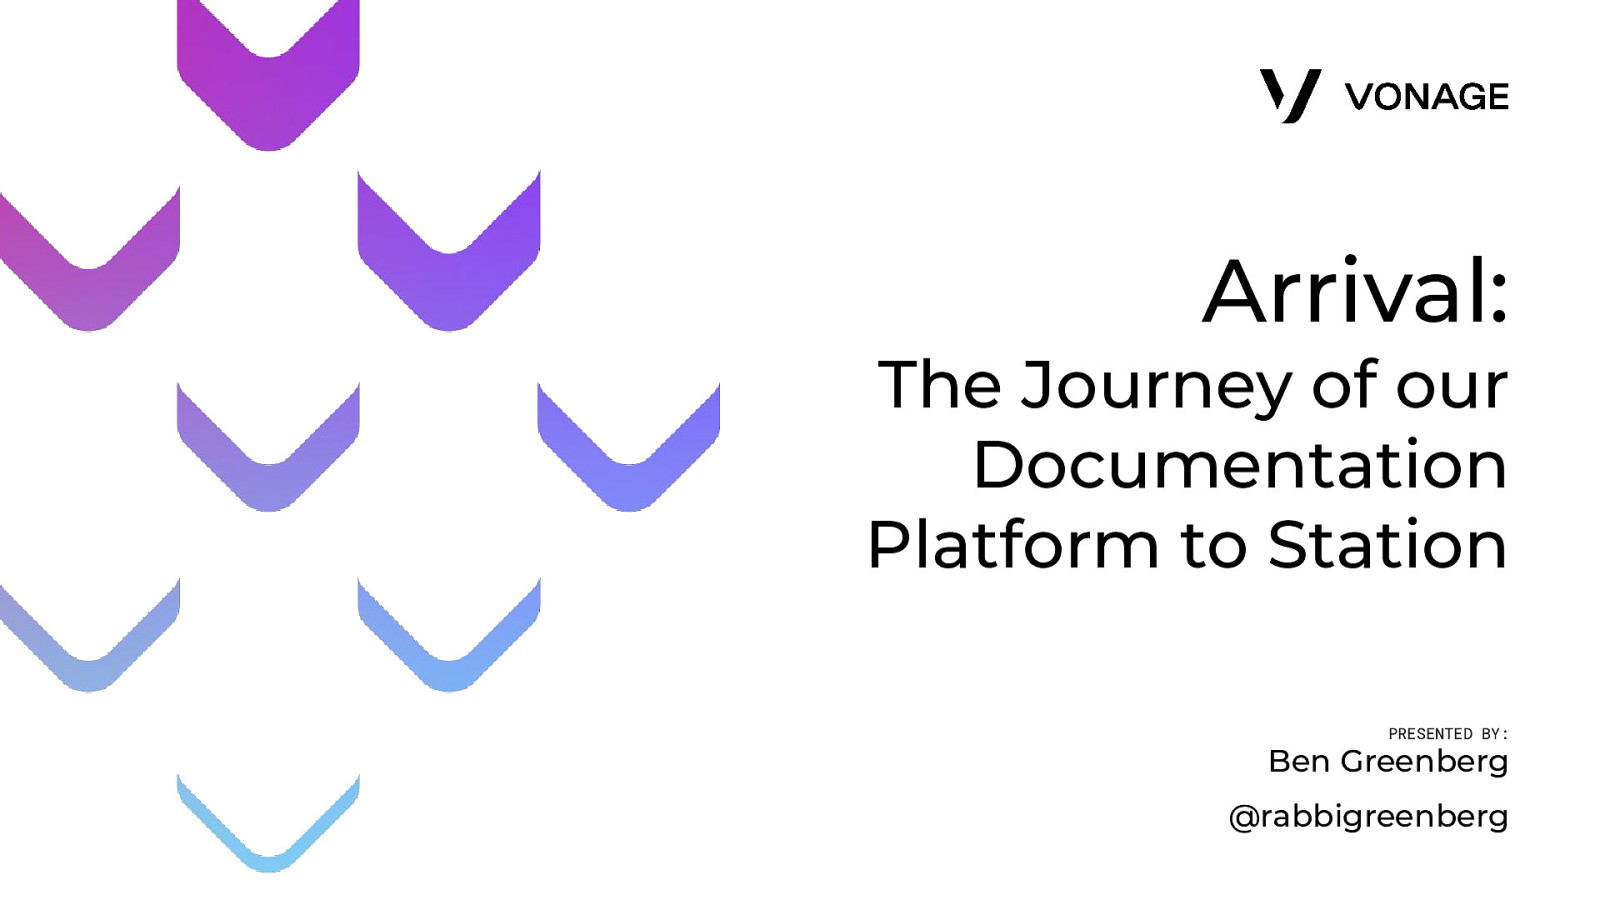 Arrival: The Journey of our Documentation Platform to Station